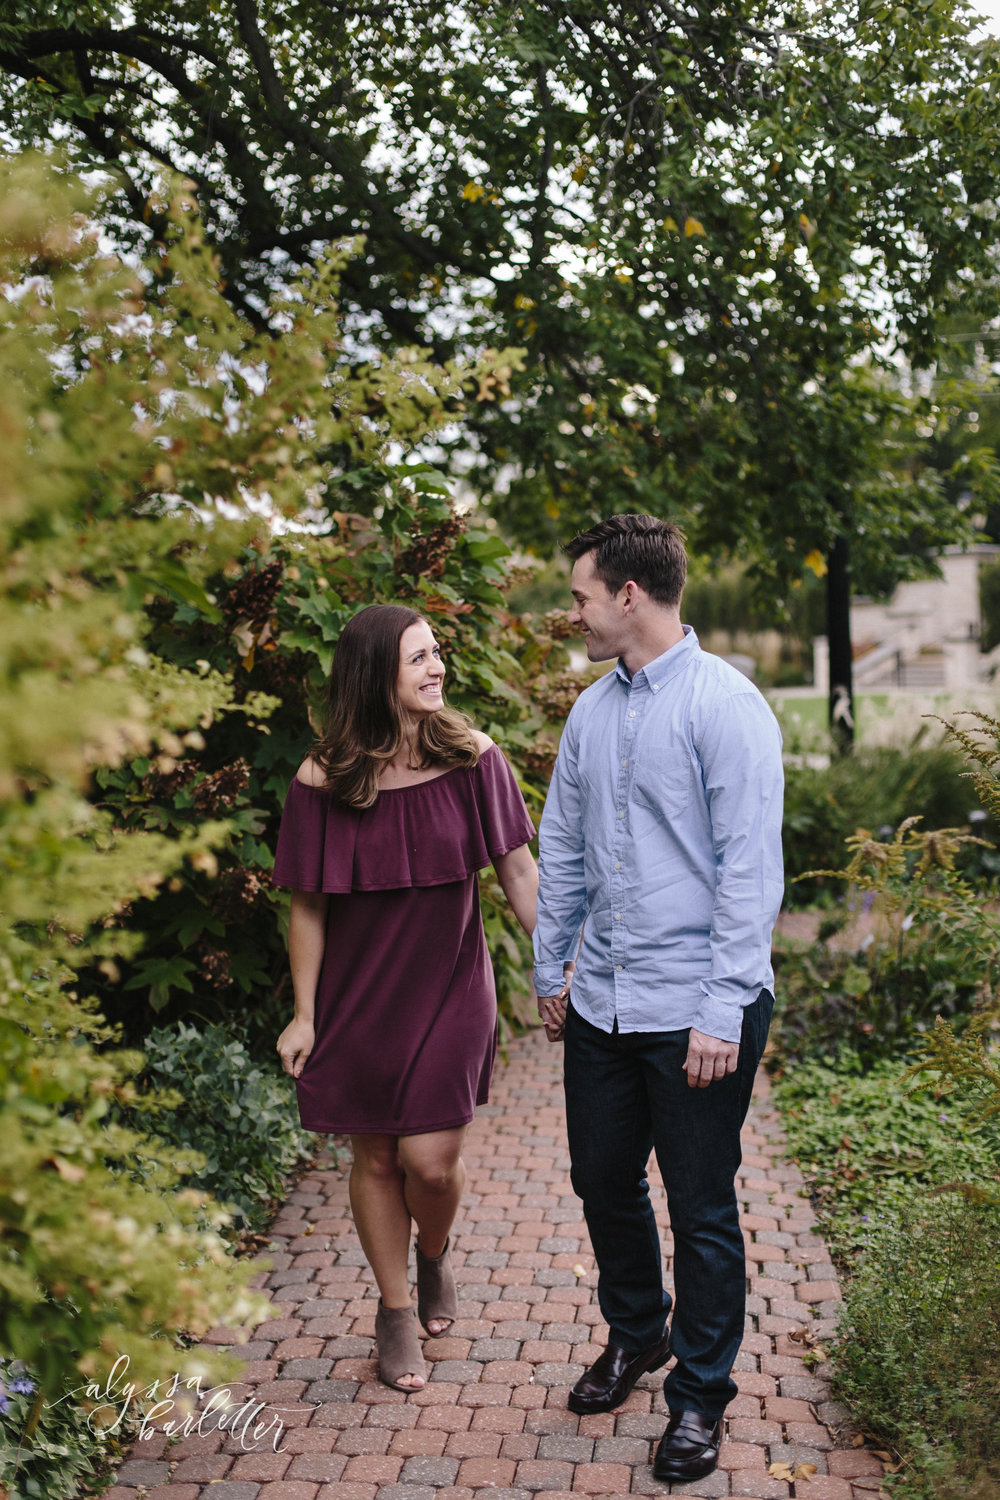 alyssa barletter photography manhattan kansas engagement photos kstate gardens taylor and kirk-1-8.jpg